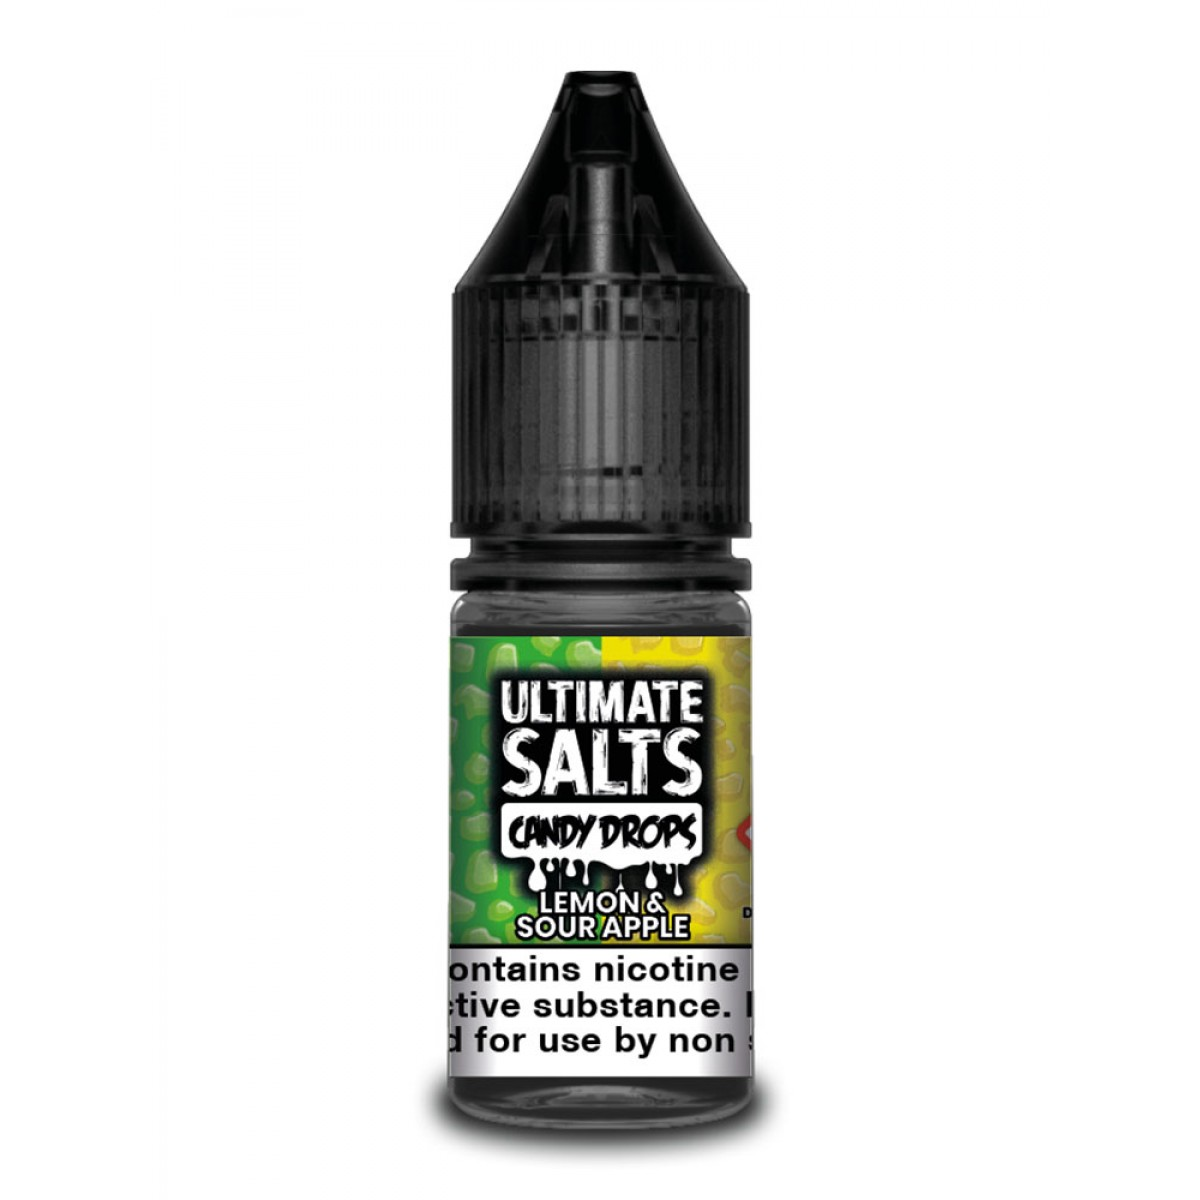 LEMON & SOUR APPLE BY ULTIMATE SALTS CANDY DROPS